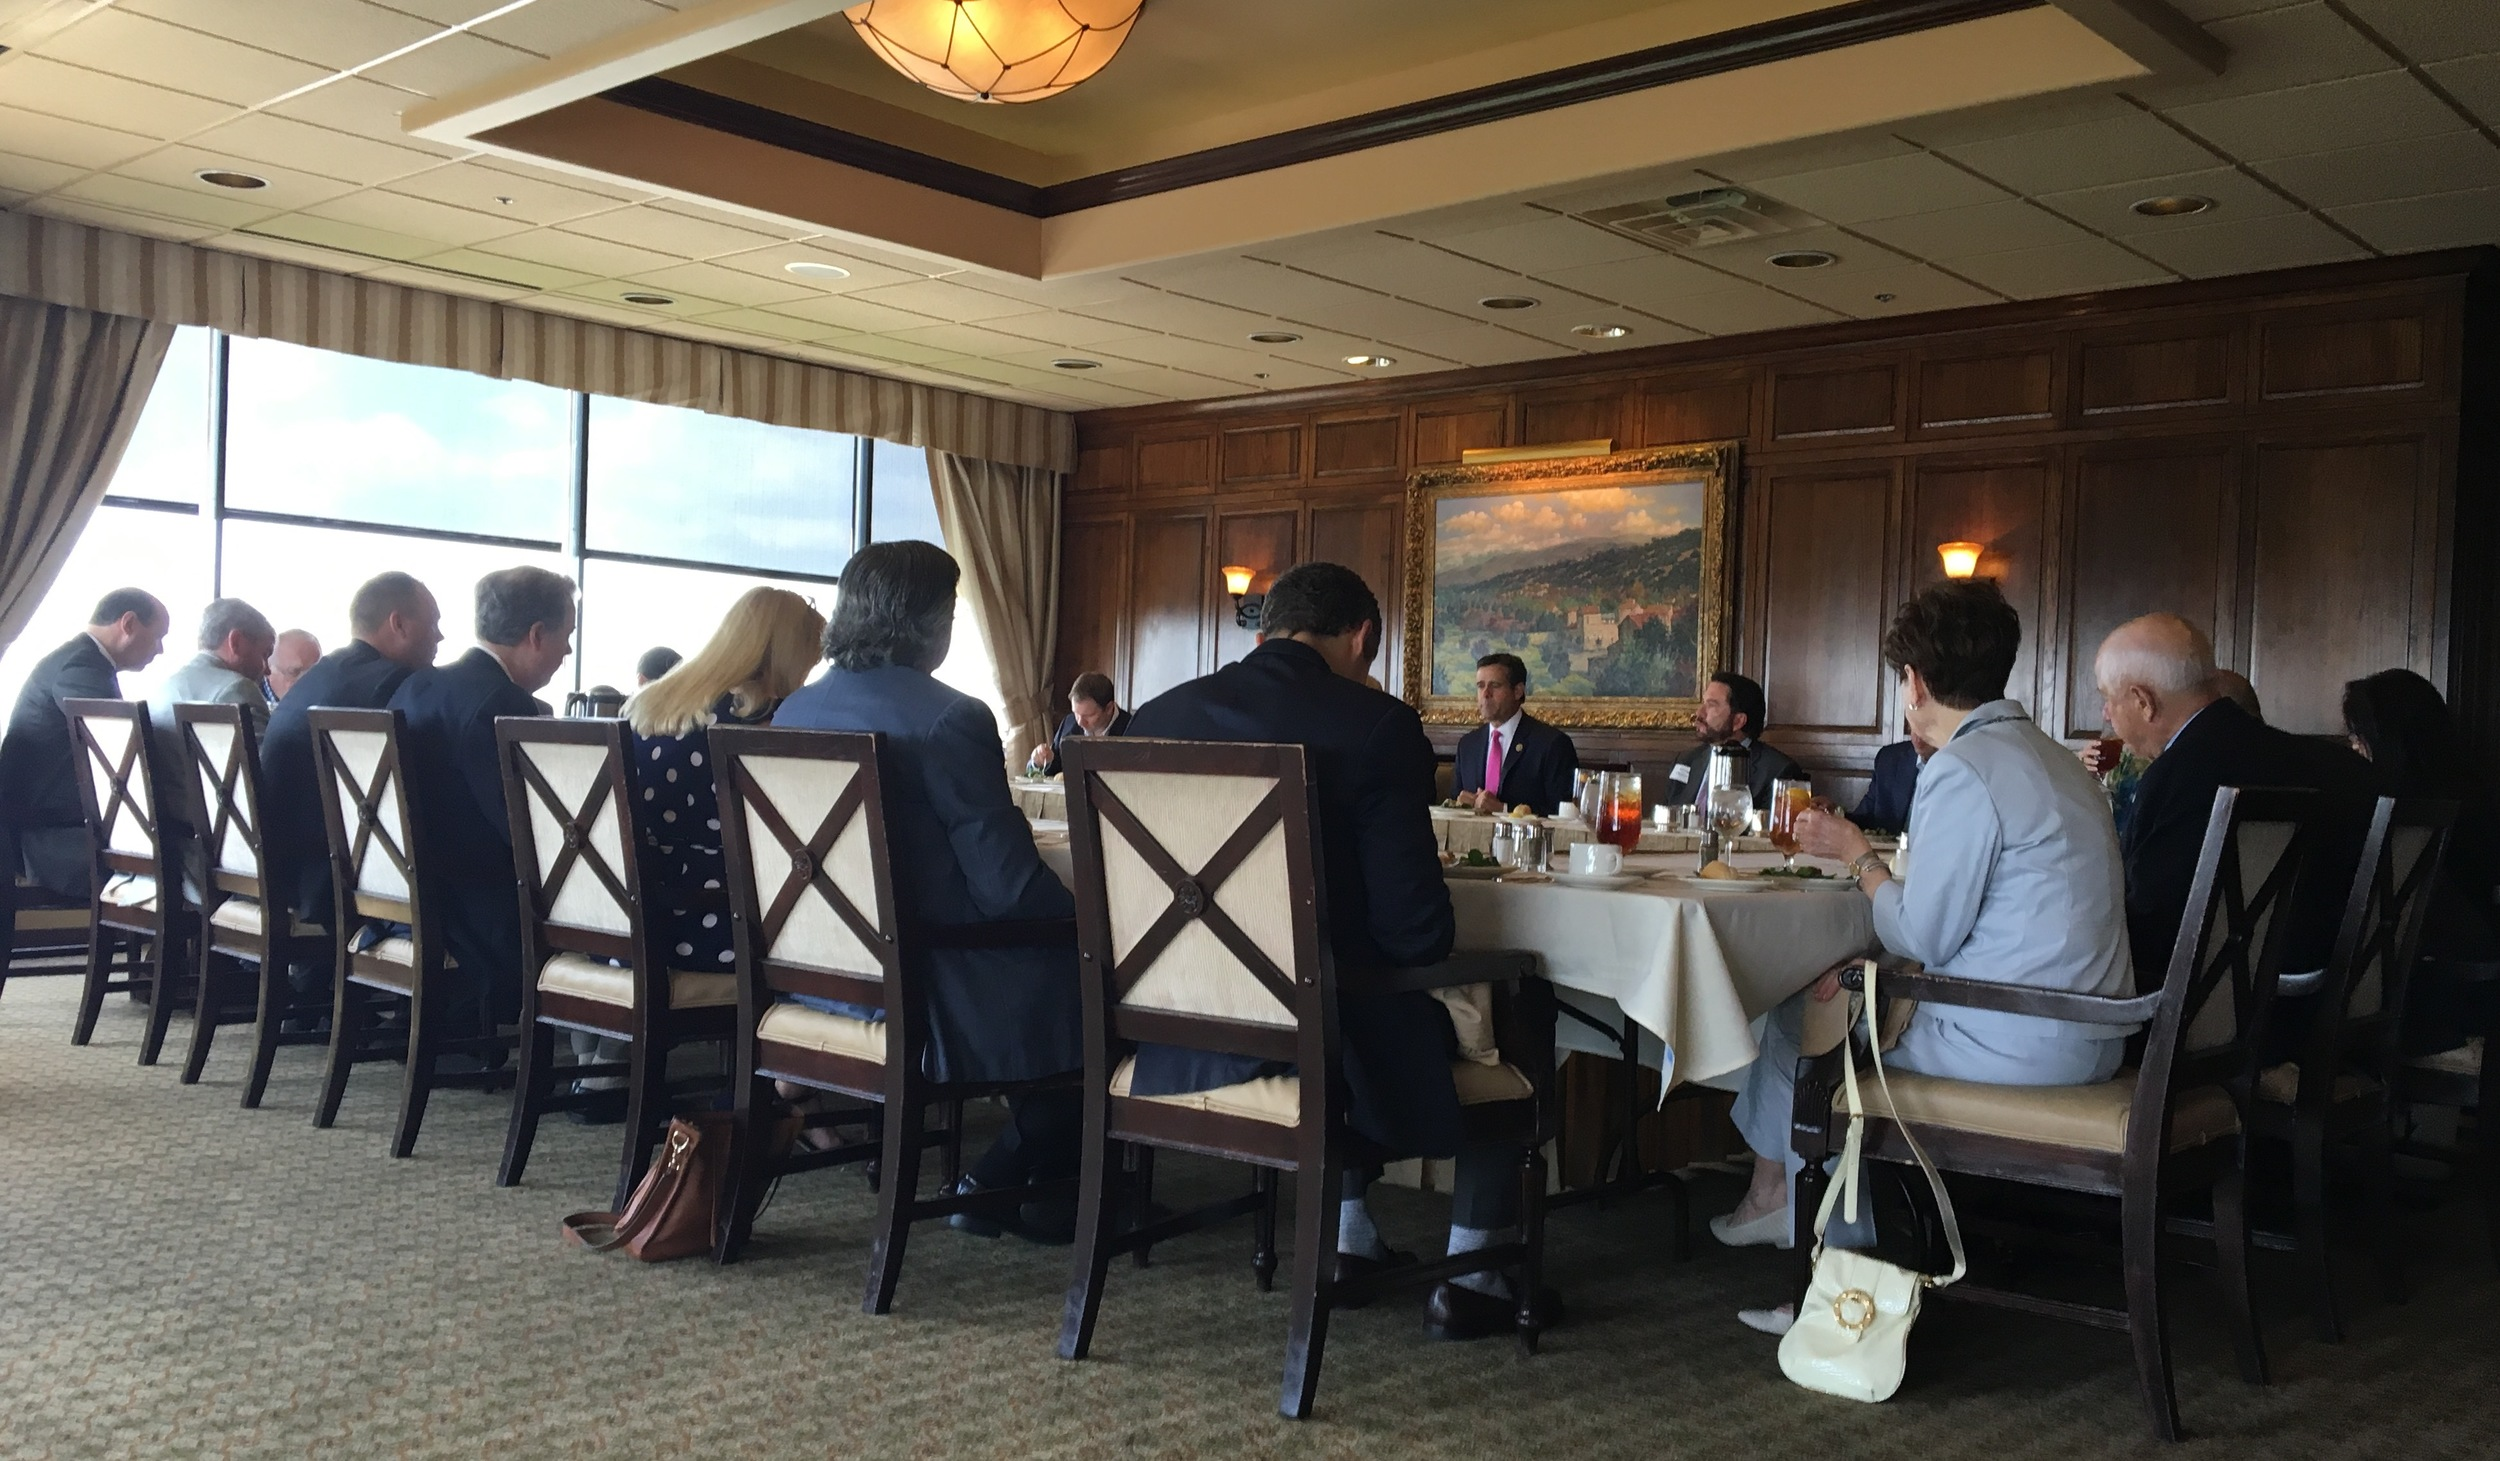 Congressman John Ratcliffe (TX-04) holds a lunch with supporters at the Park City Club in Dallas in 2016.